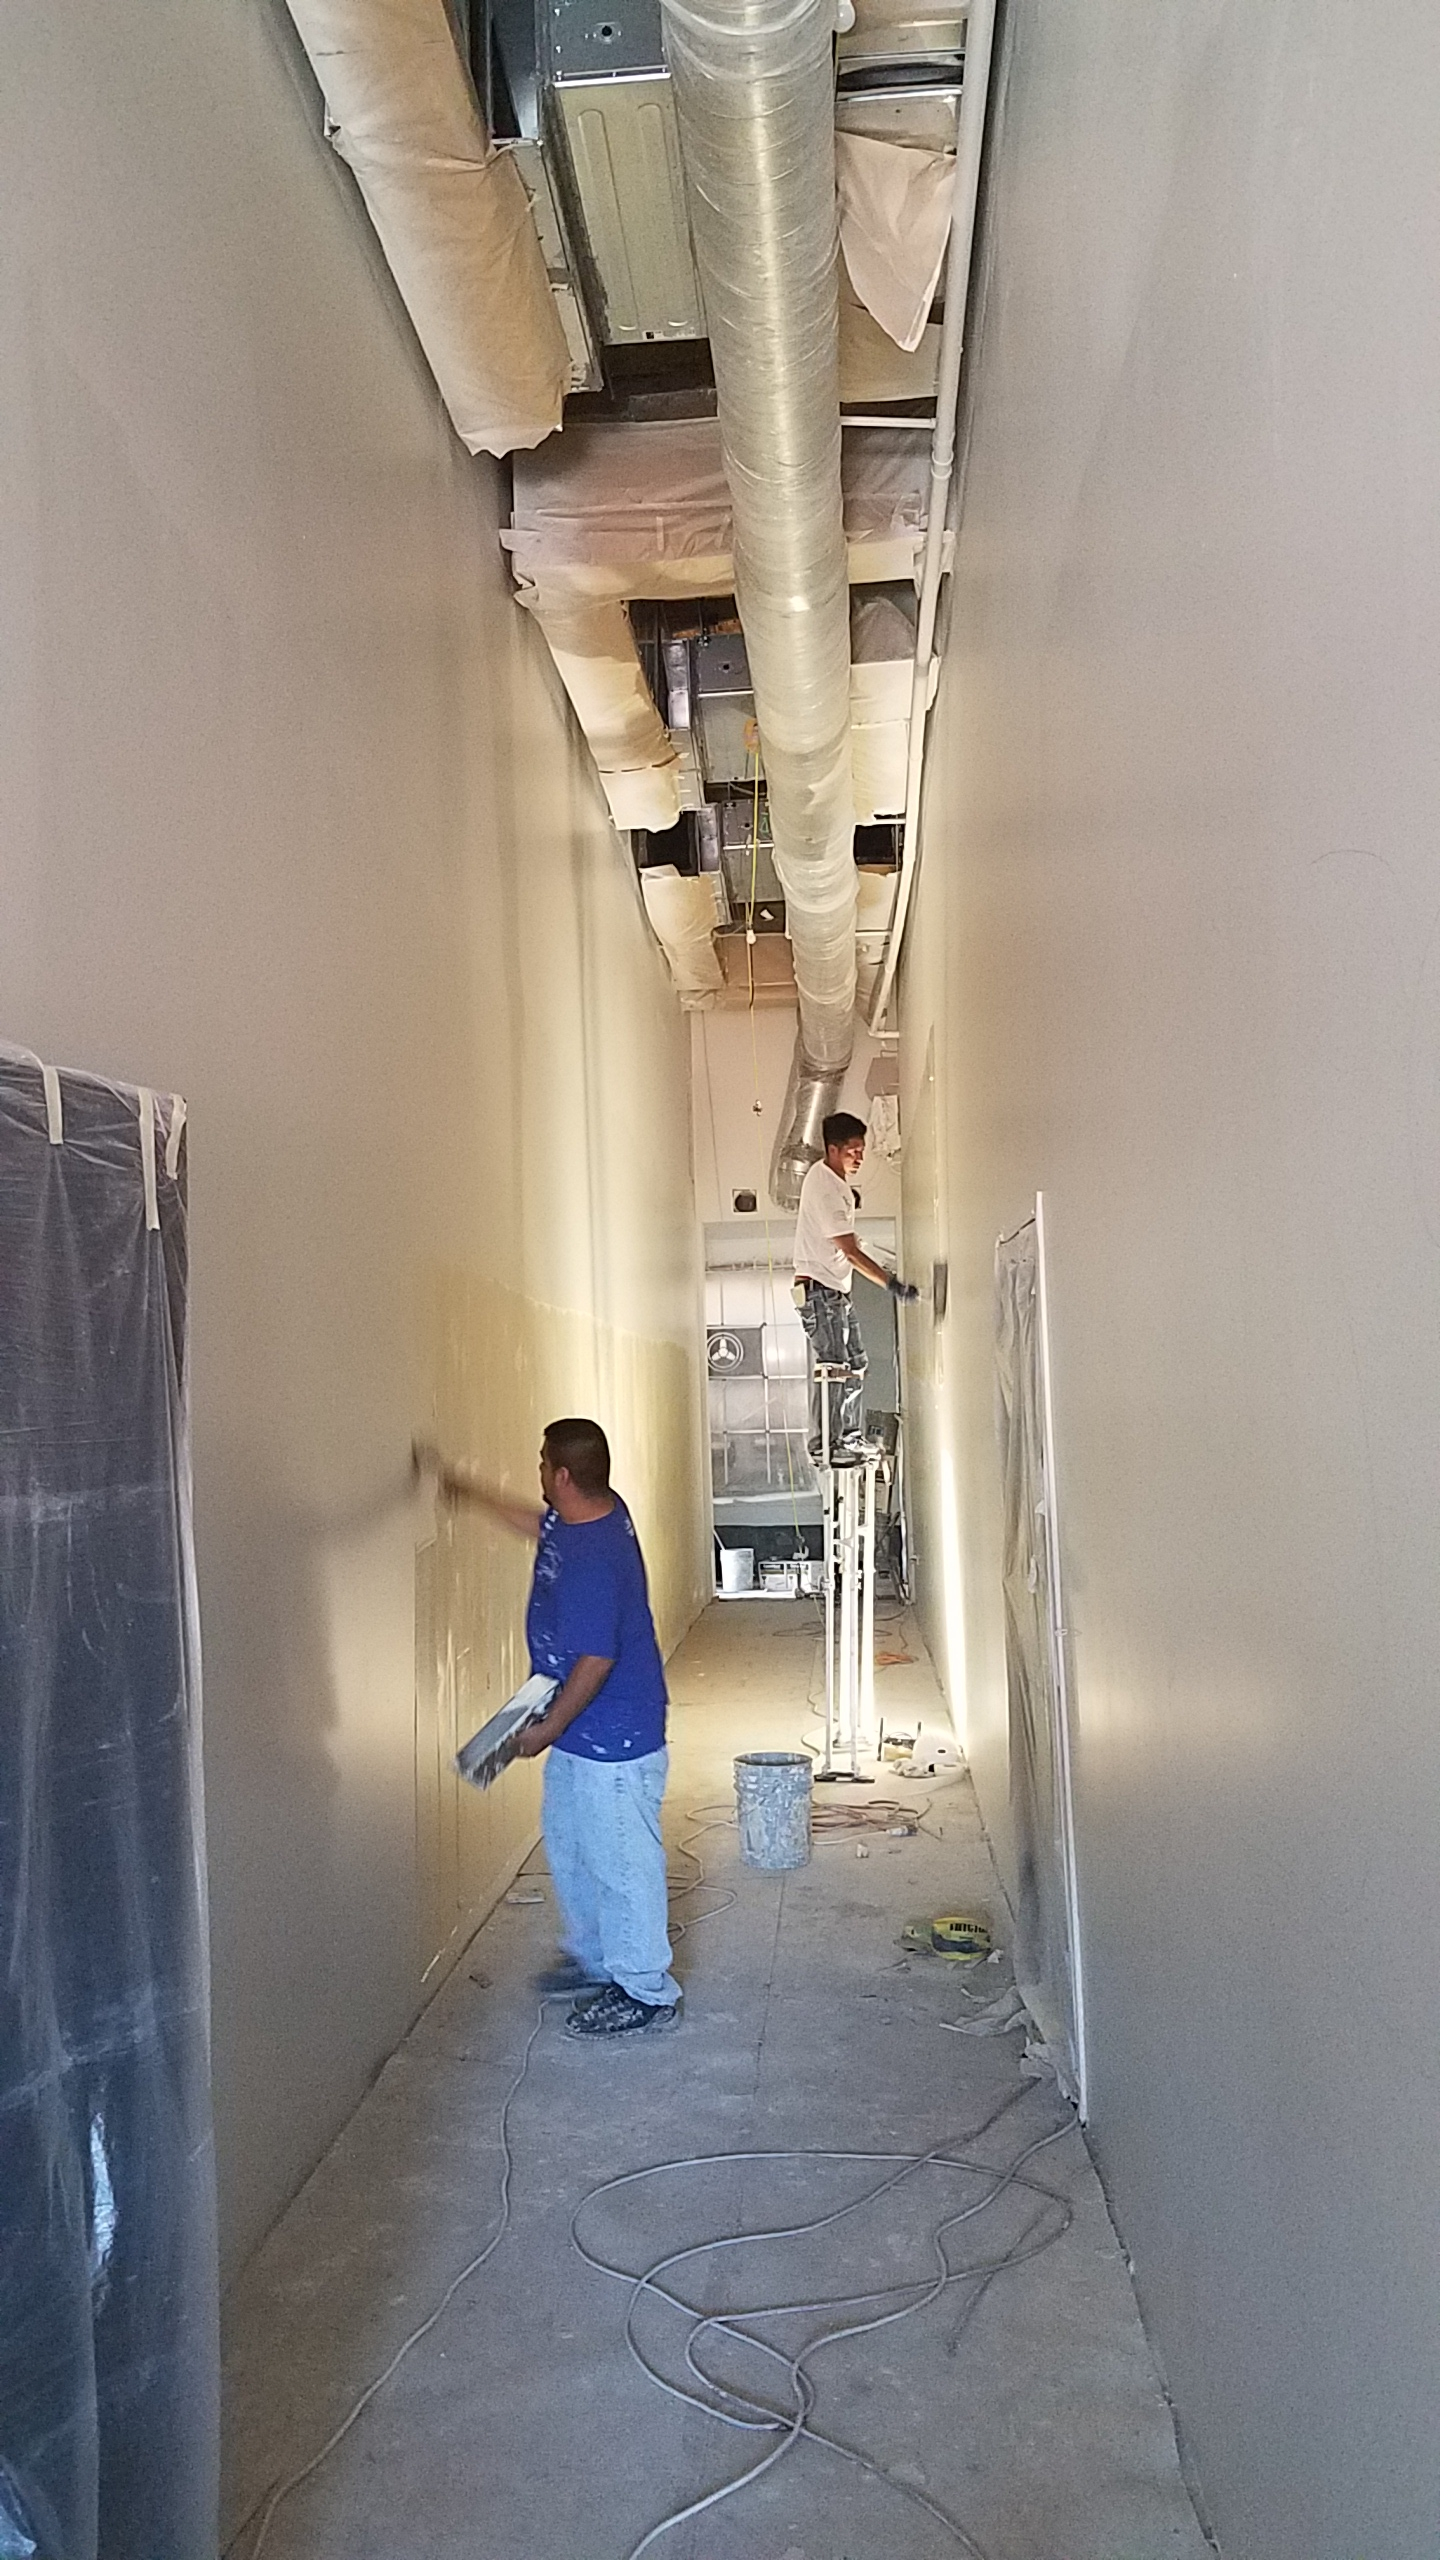 Work on the hallway continues. A crew came and skimmed the entire wall with mud.